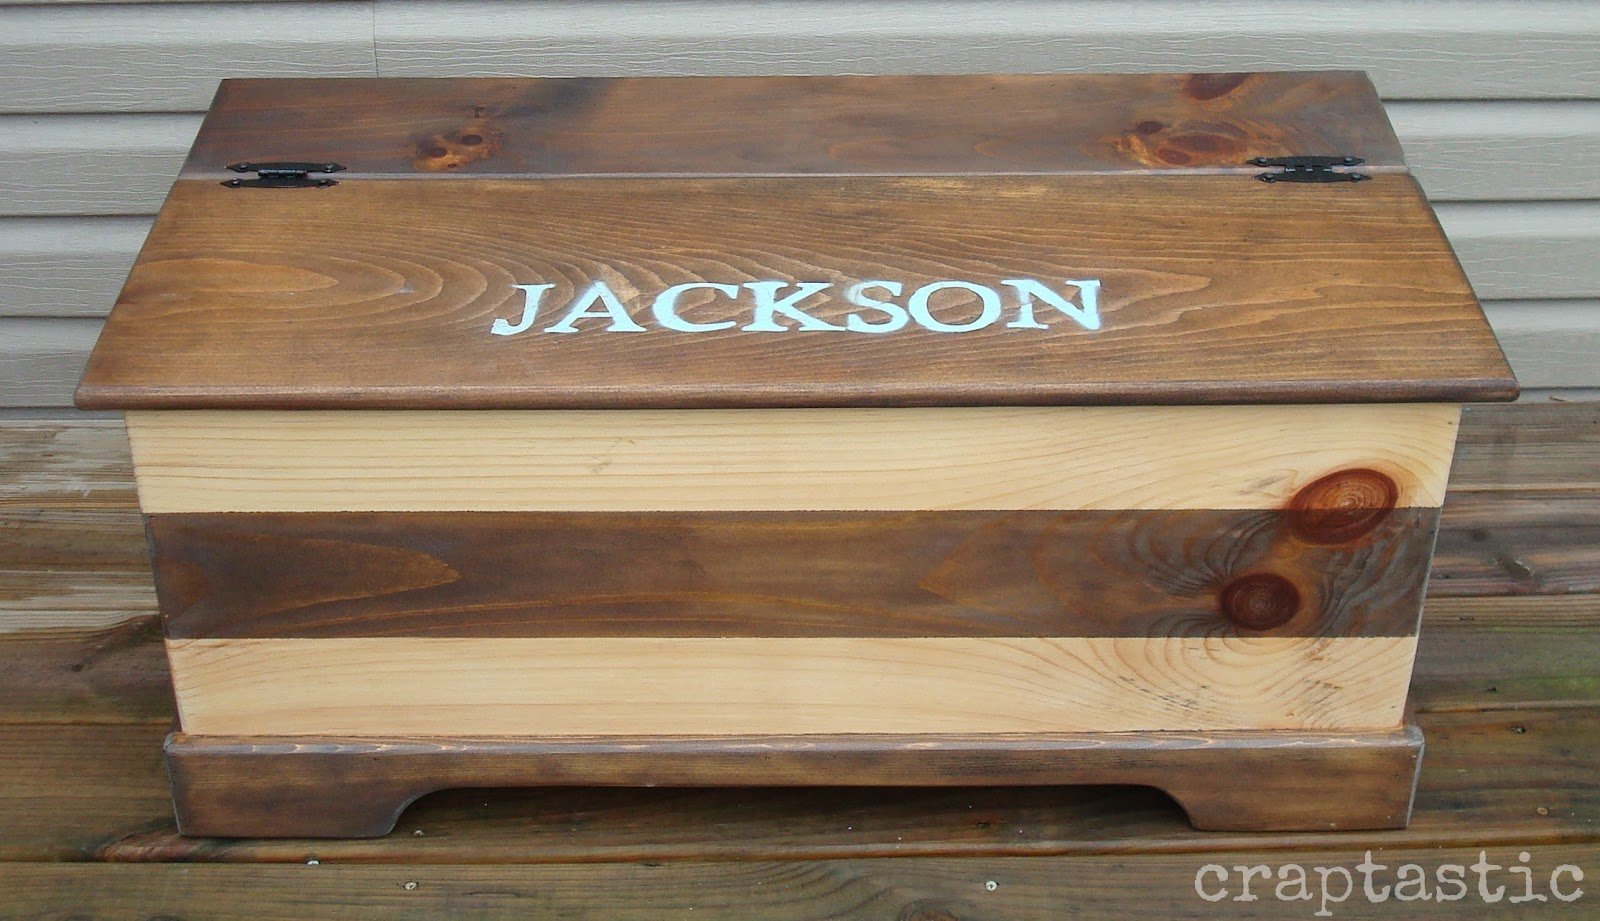 is a great woodworking project to do and the chest